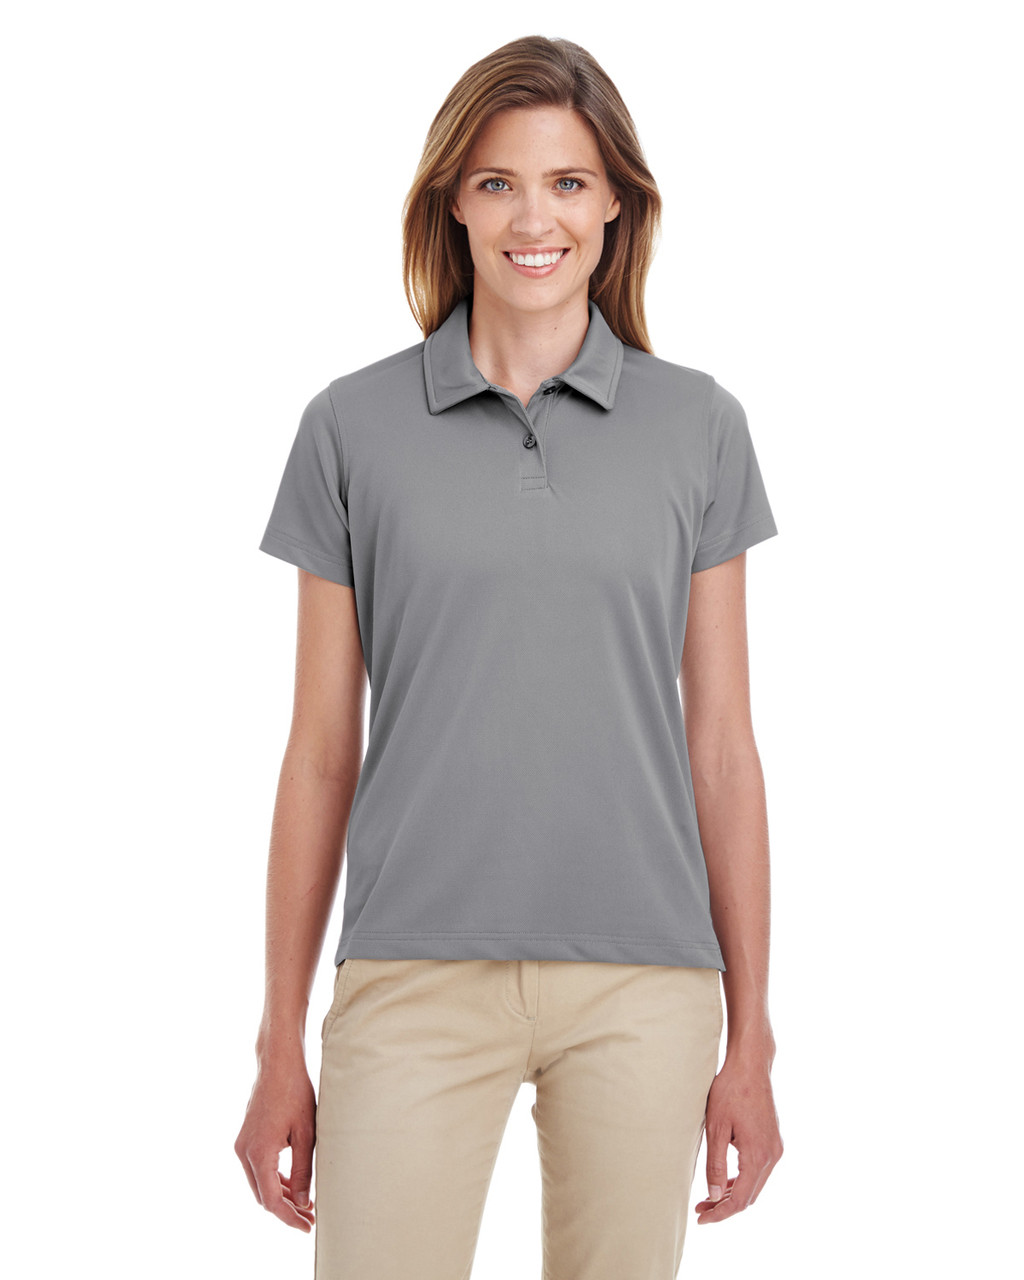 Sport Graphite - TT21W Team 365 Ladies' Command Snag Protection Polo Shirt